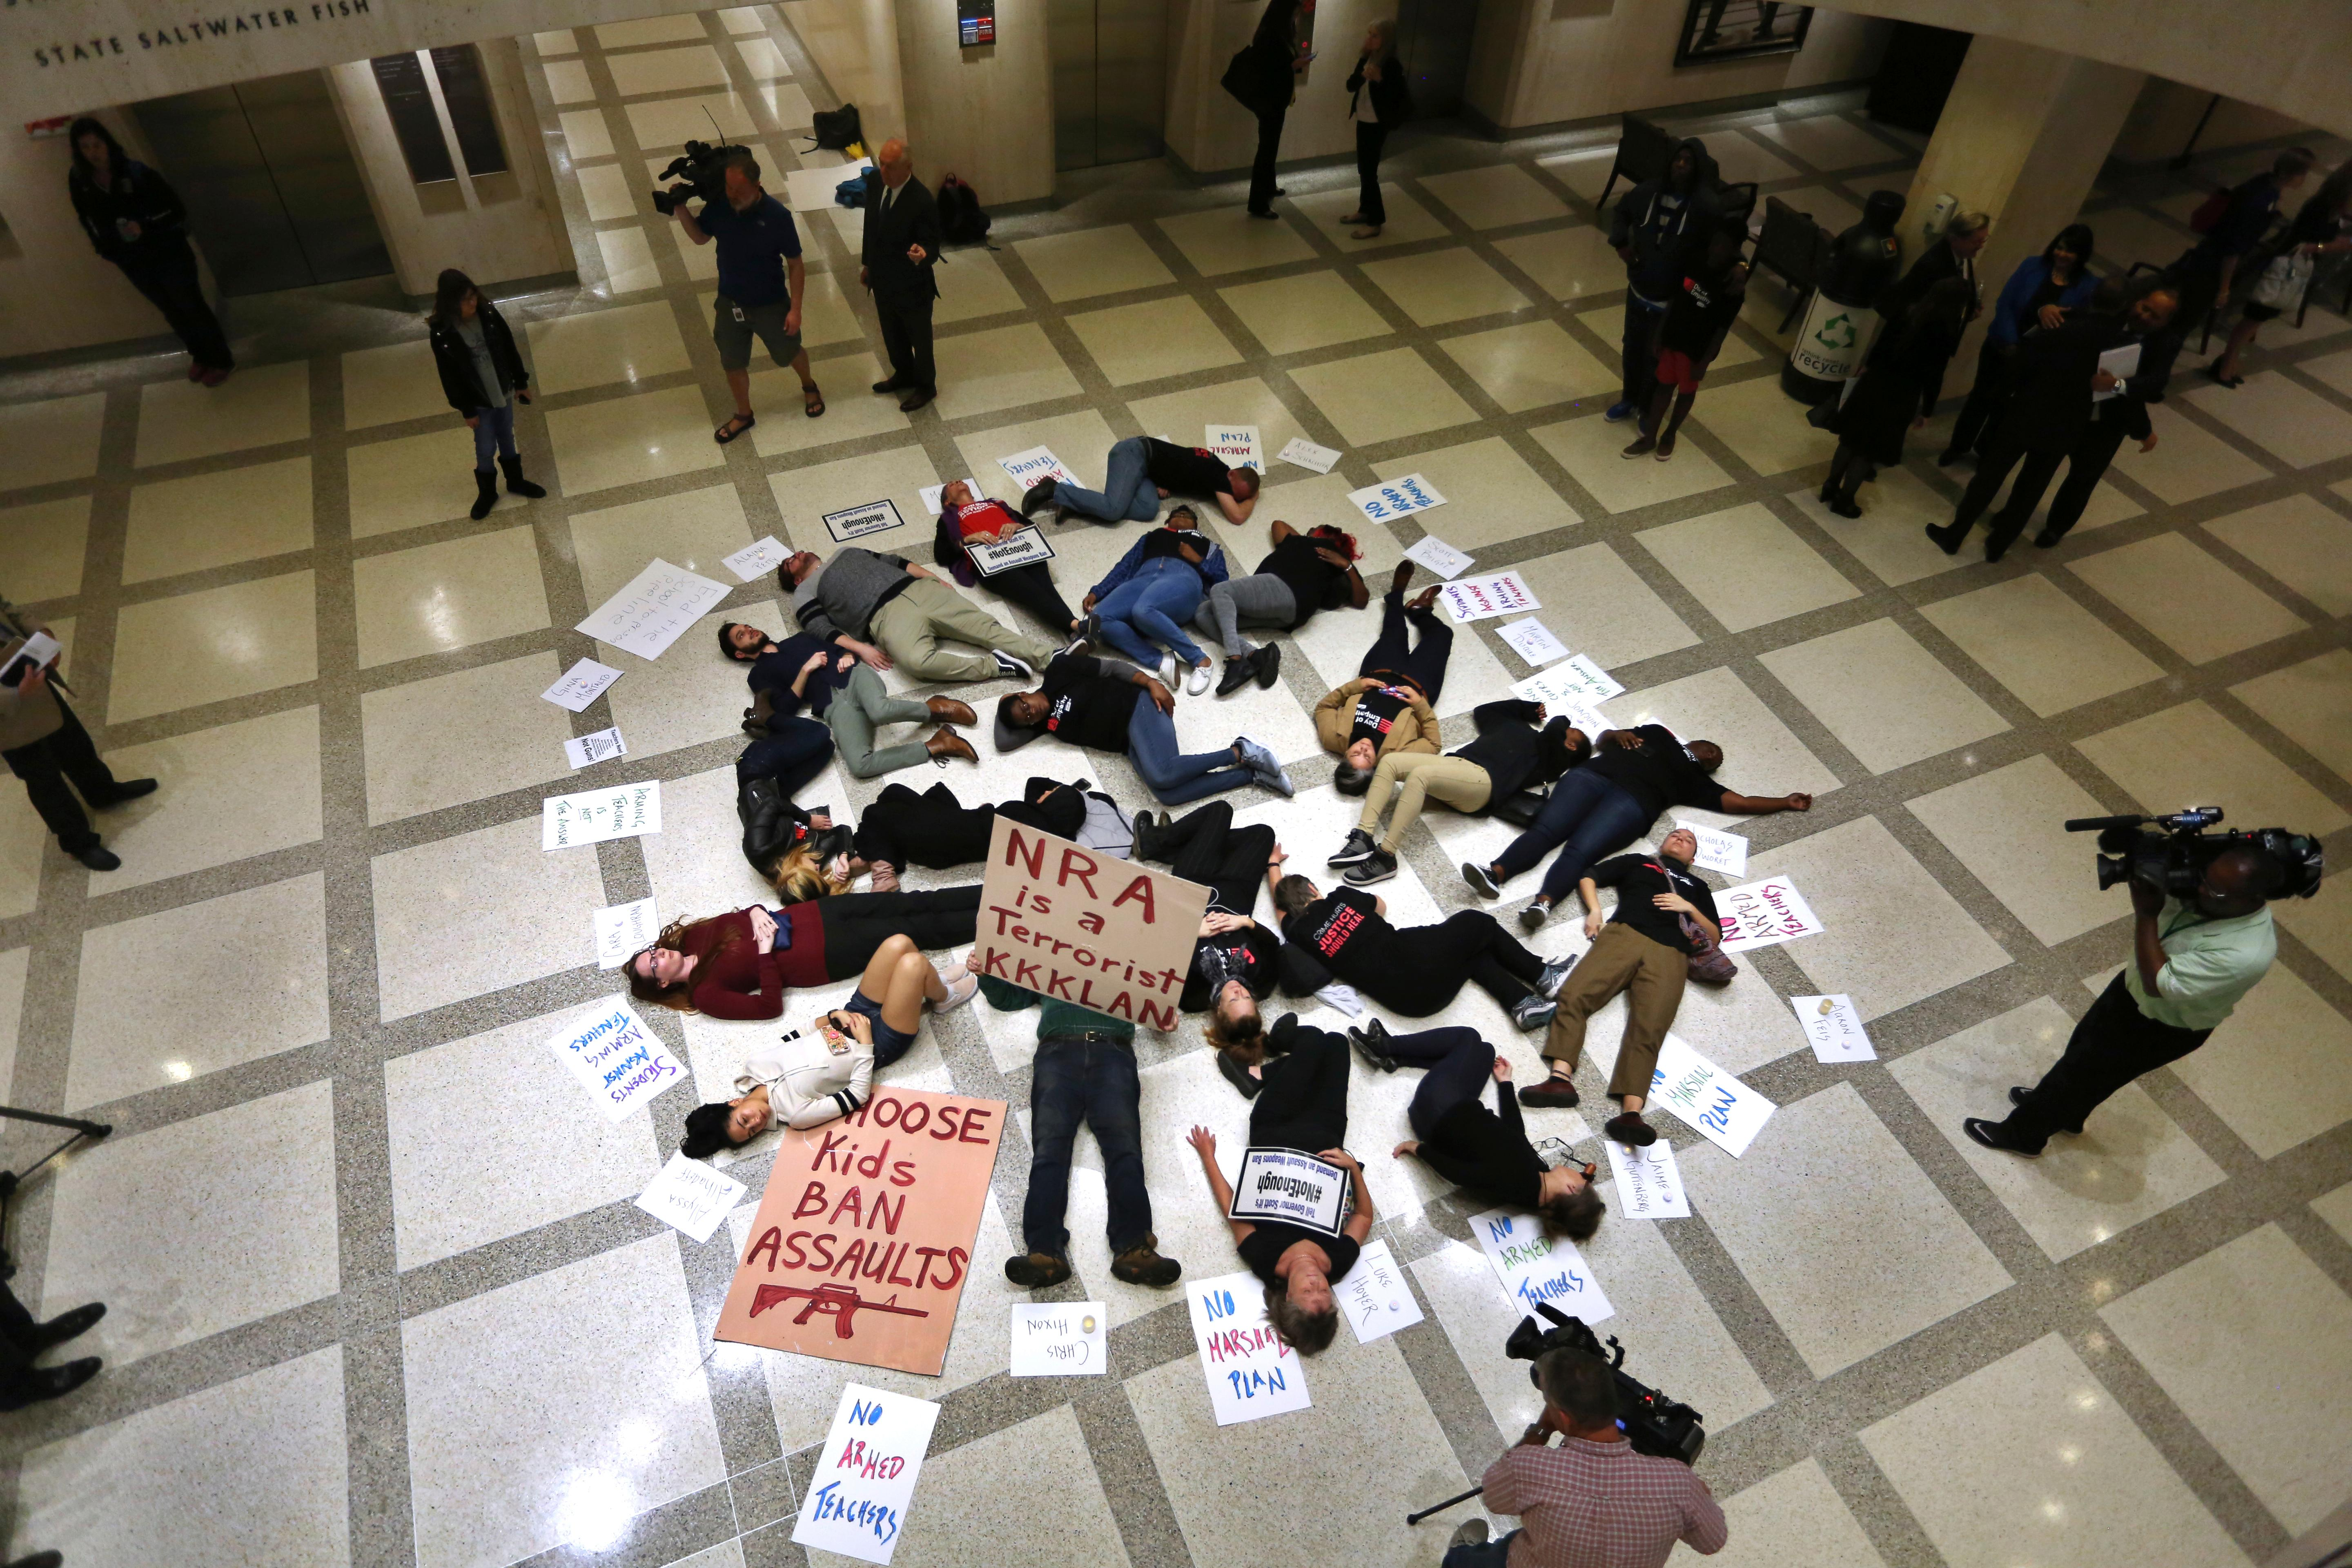 About 20 protesters participate in a die-In on the fourth floor rotunda of the Florida Capitol, in Tallahassee Tuesday, March 6, 2018, as they continue to push for an assault weapons ban. Lawmakers in the Florida House were debating a gun/school safety bill at the time. (Scott Keeler/The Tampa Bay Times via AP)